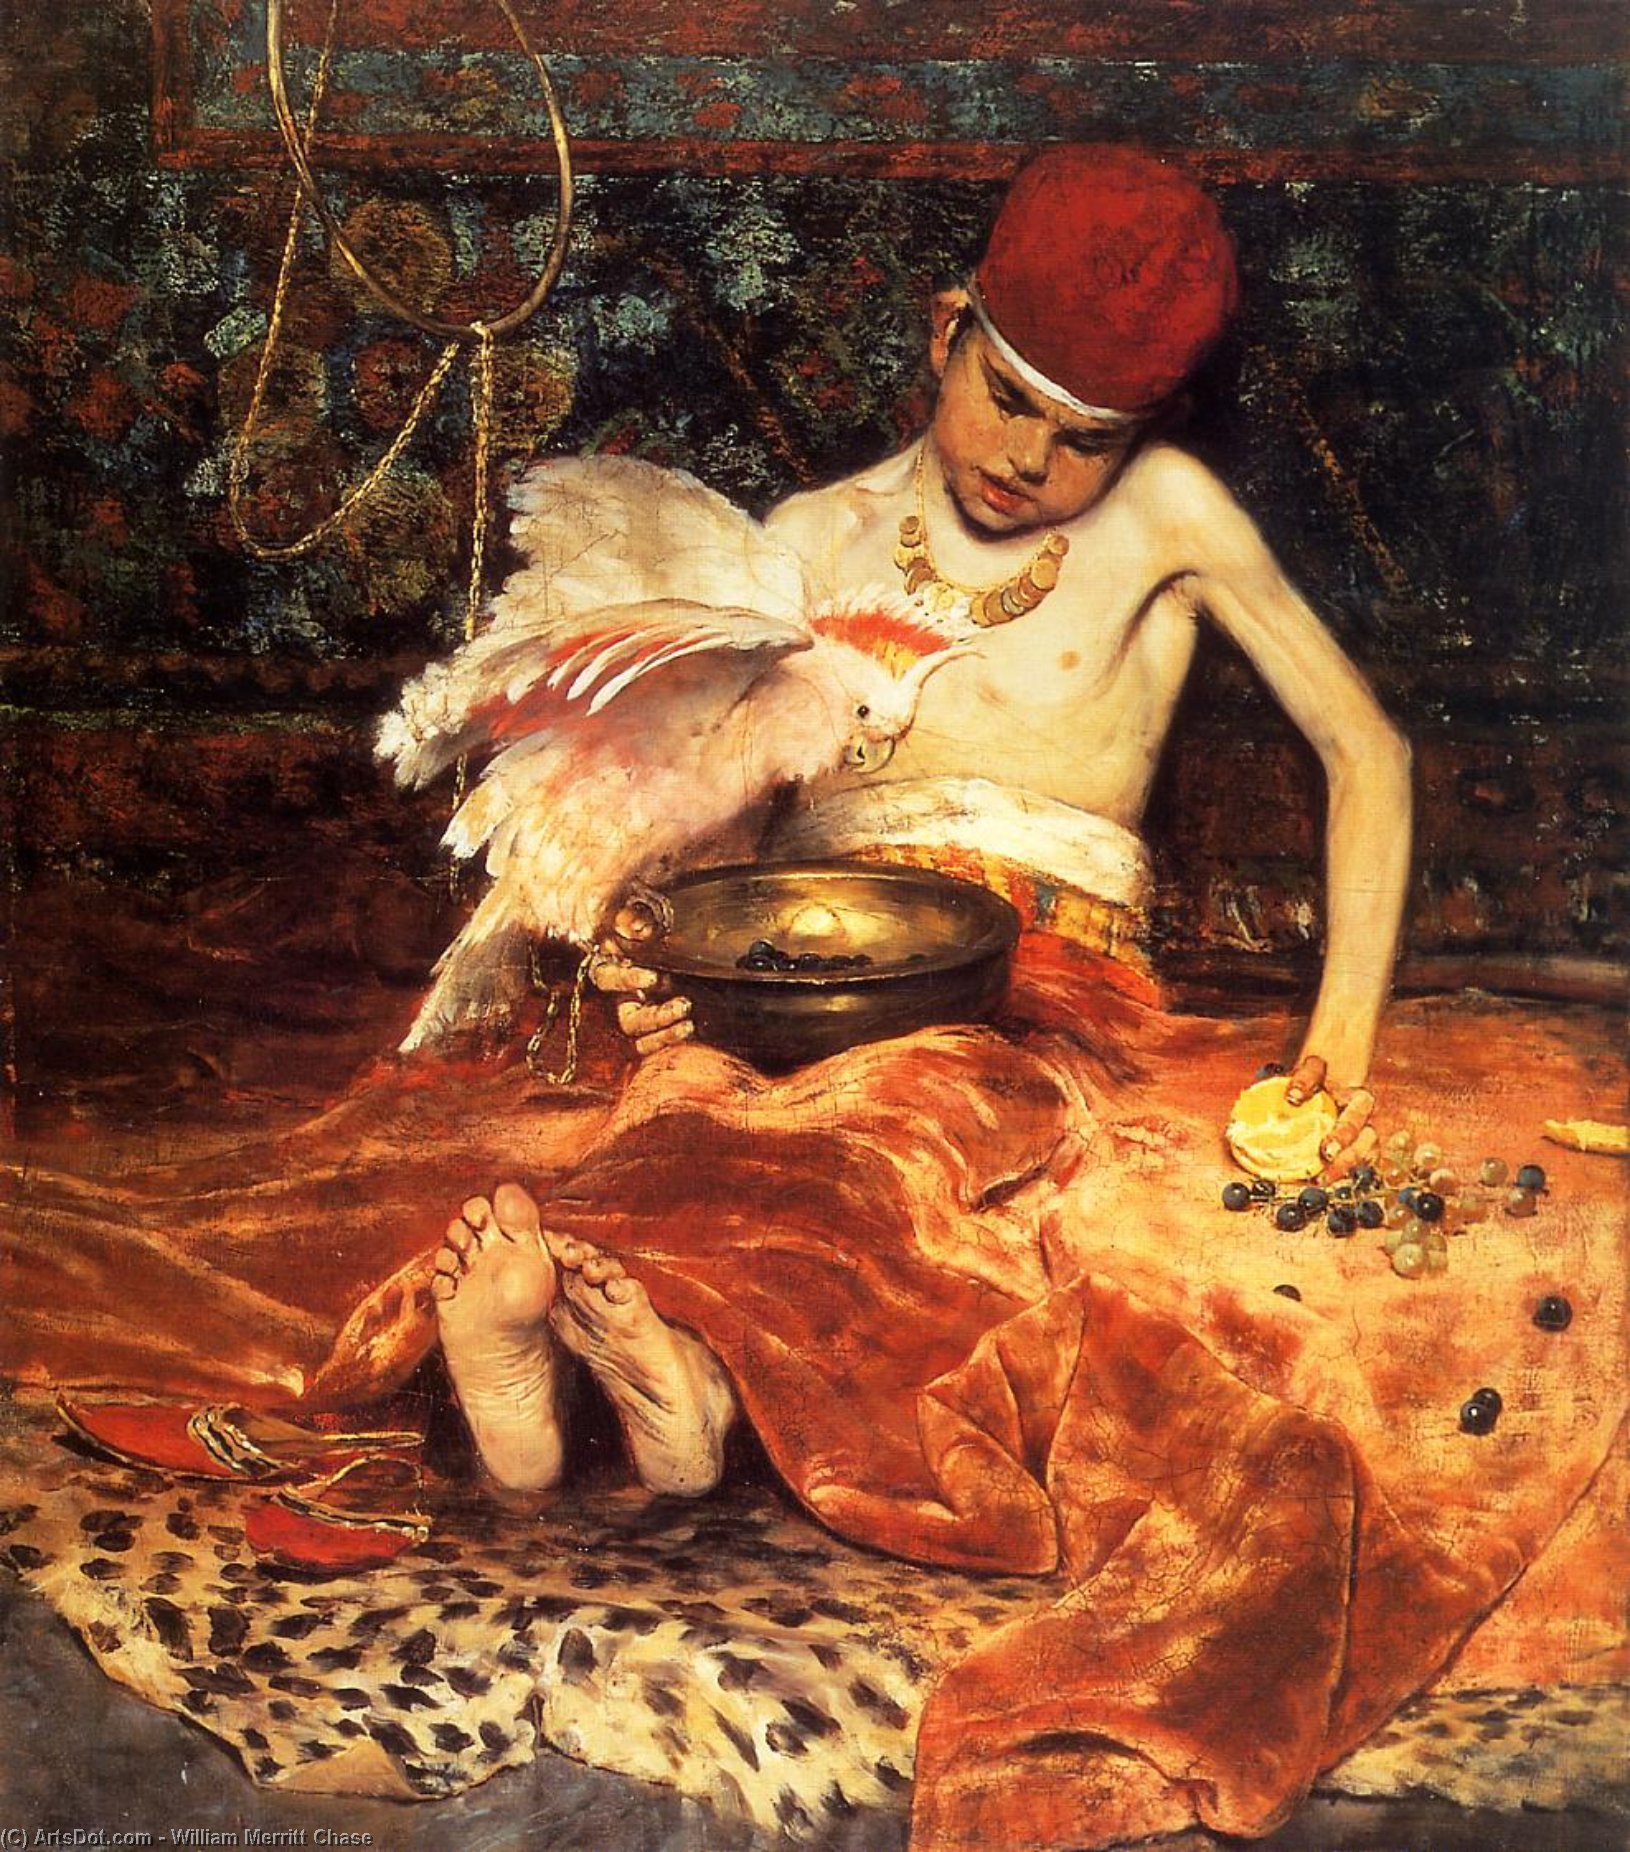 Wikioo.org - The Encyclopedia of Fine Arts - Painting, Artwork by William Merritt Chase - Unexpected Intrusion (also known as The Turkish Page)